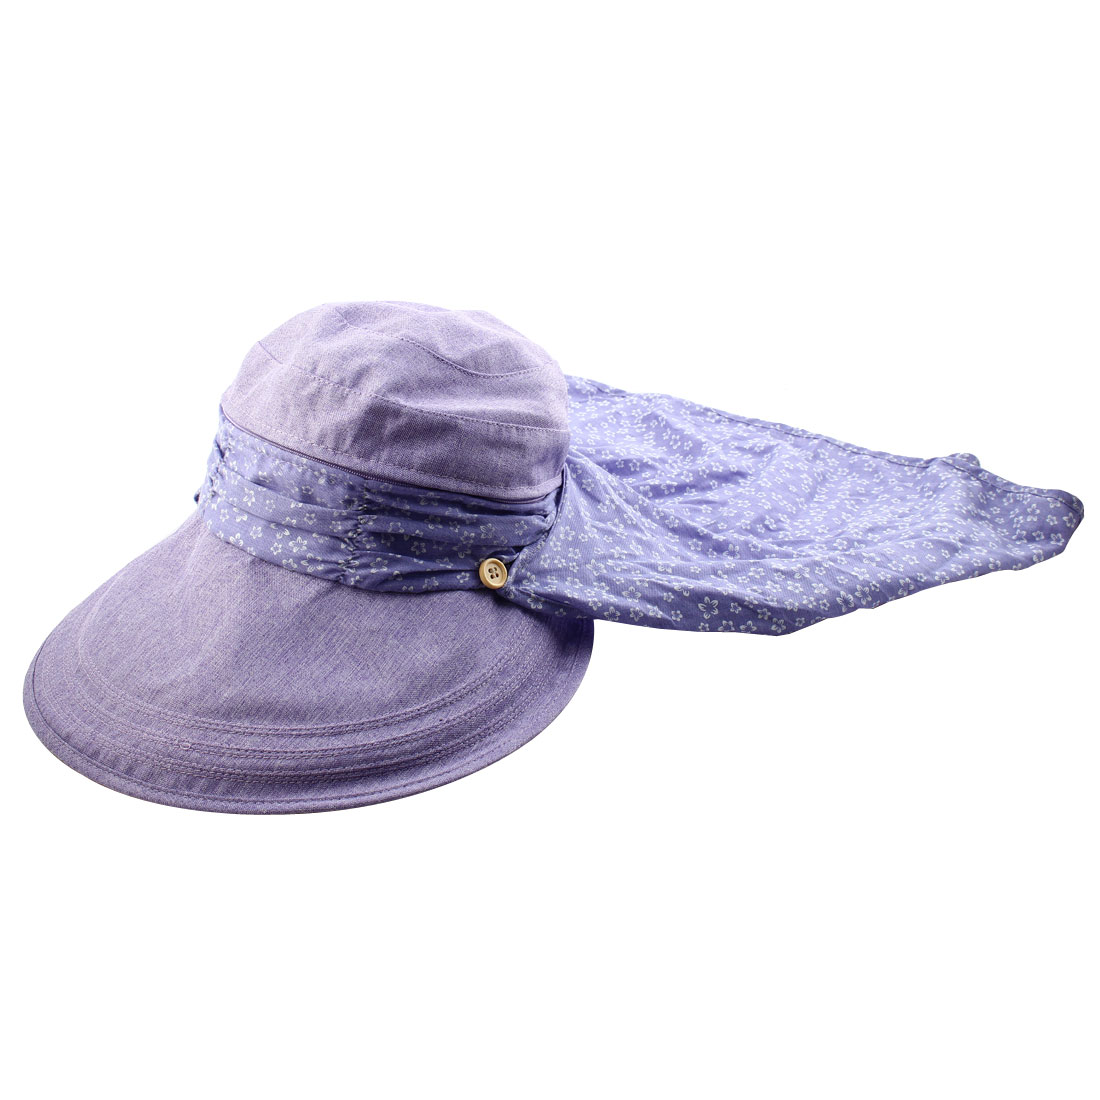 Lady Flower Printed Neck Protection Wide Brim Summer Floppy Cap Sun Visor Hat Purple